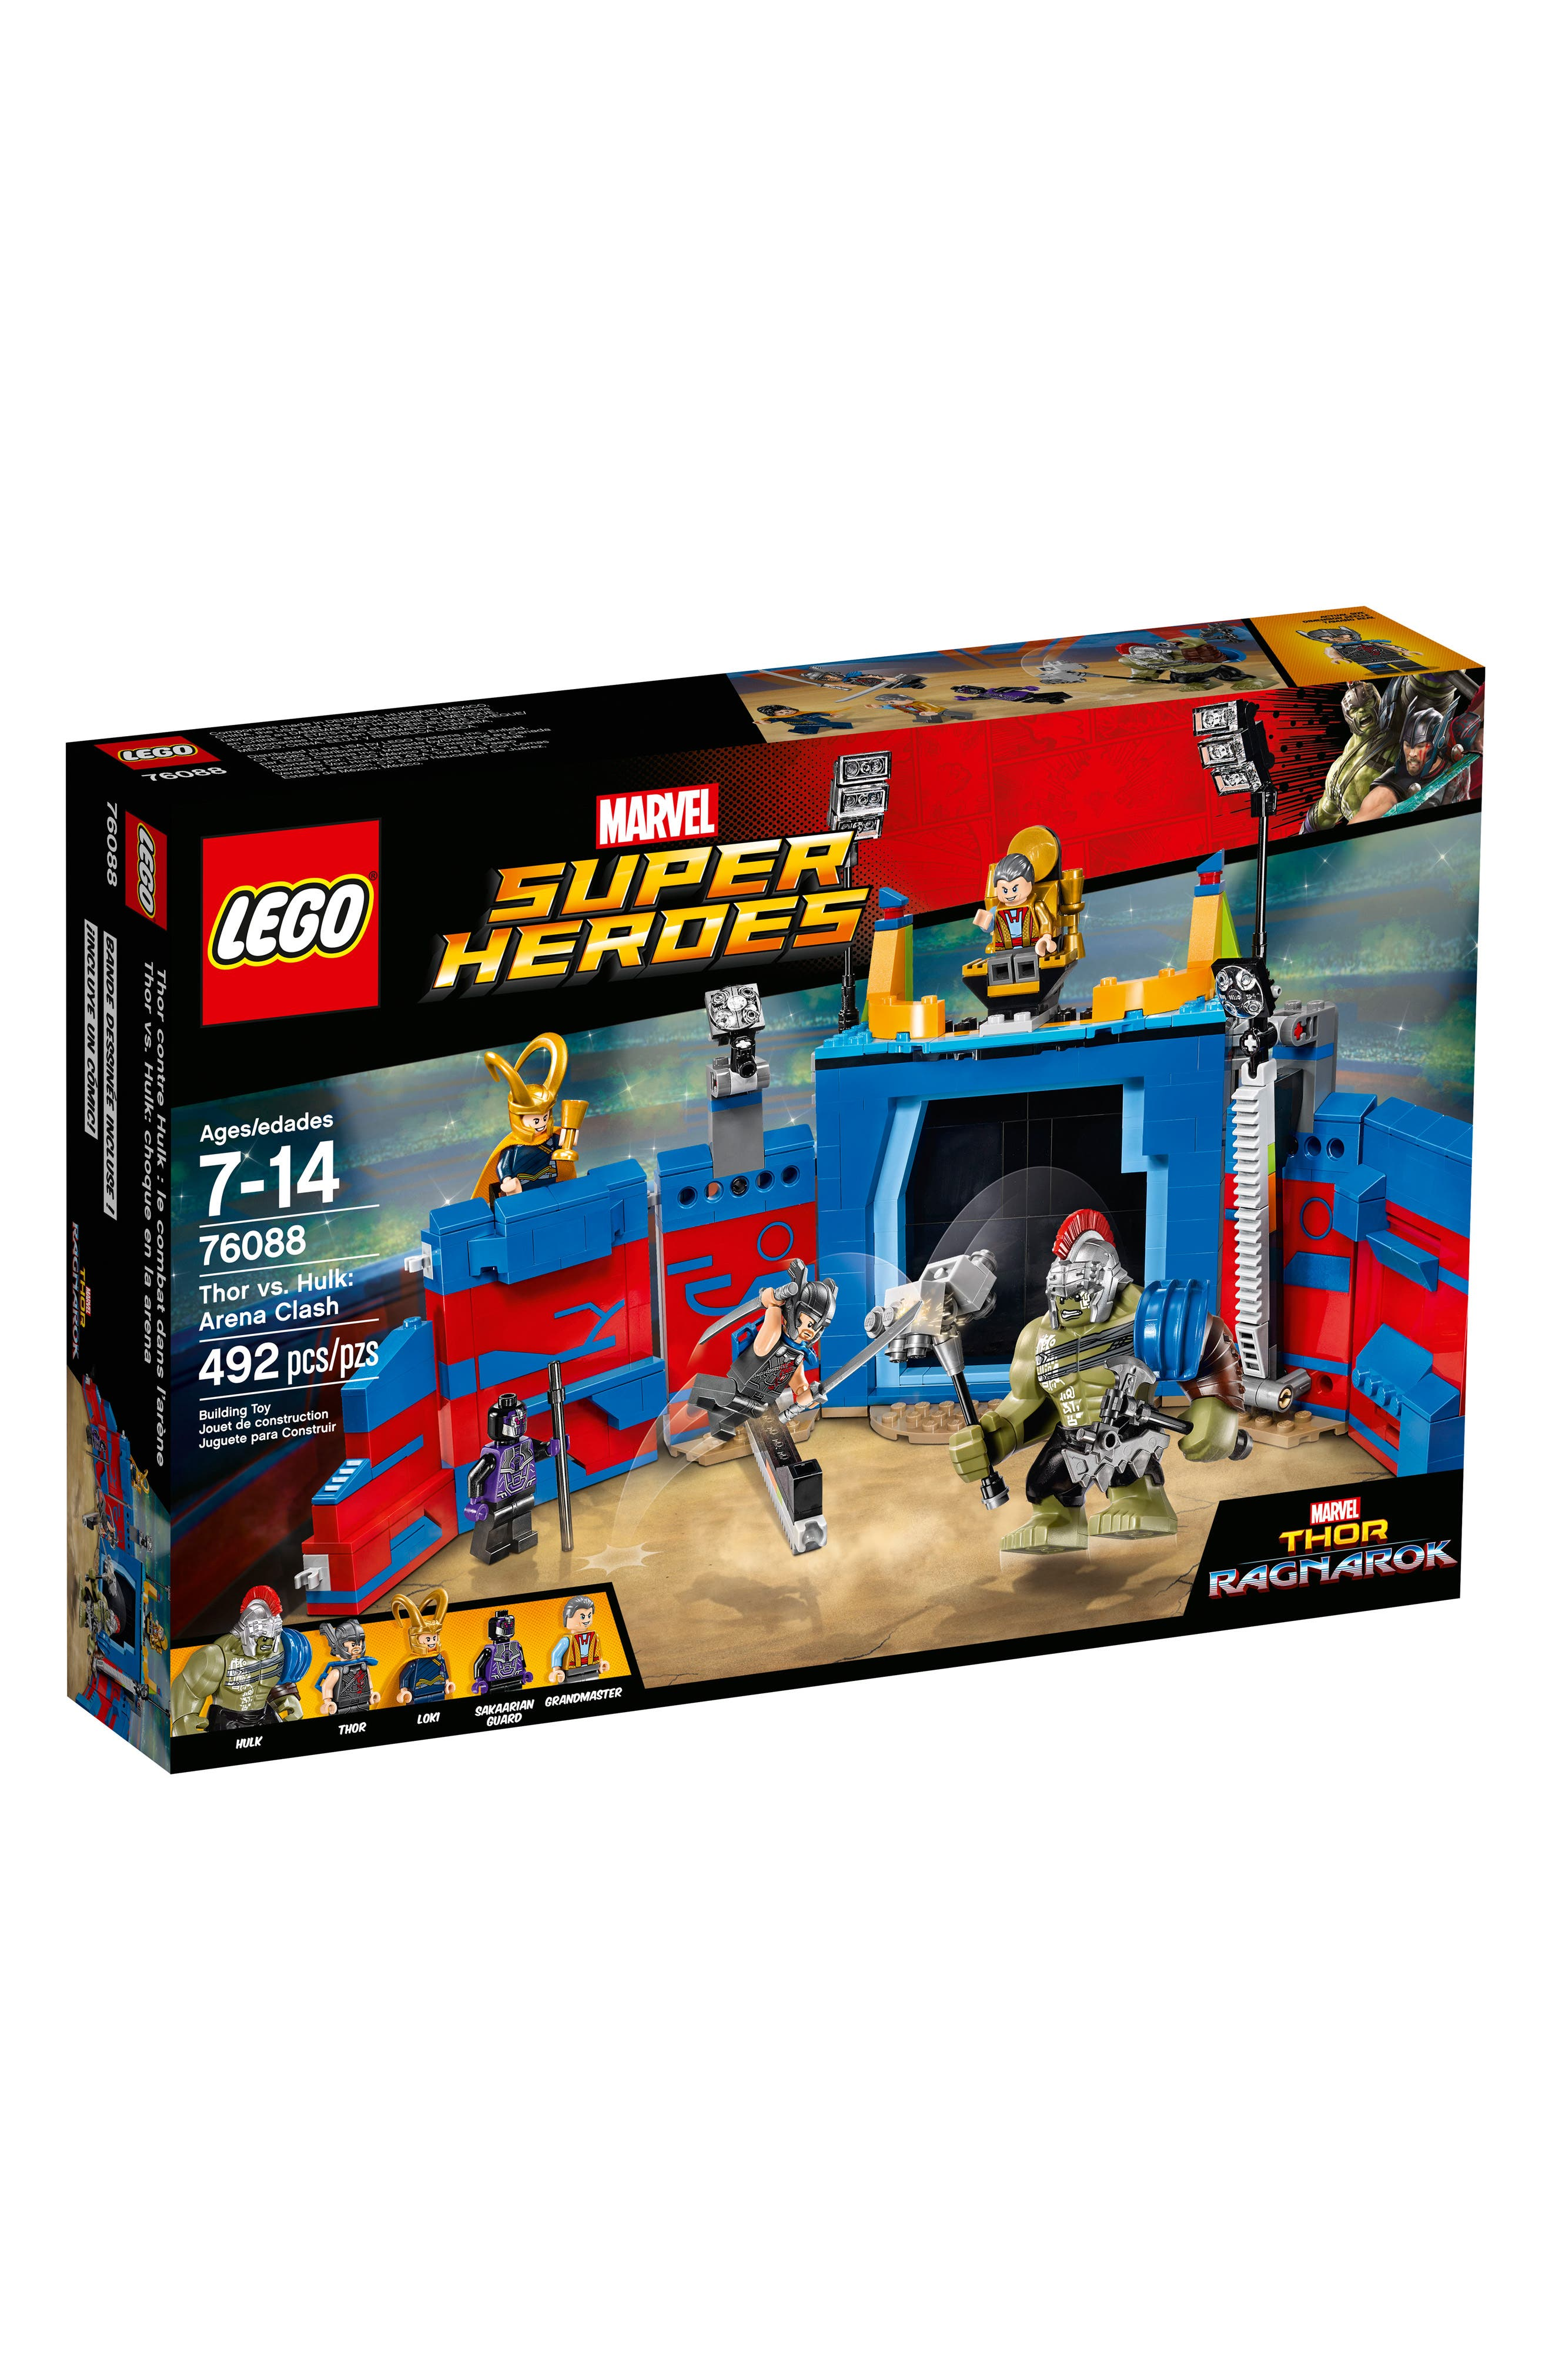 Alternate Image 1 Selected - LEGO® Marvel Super Heroes Thor vs. Hulk: Arena Clash Play Set - 76088